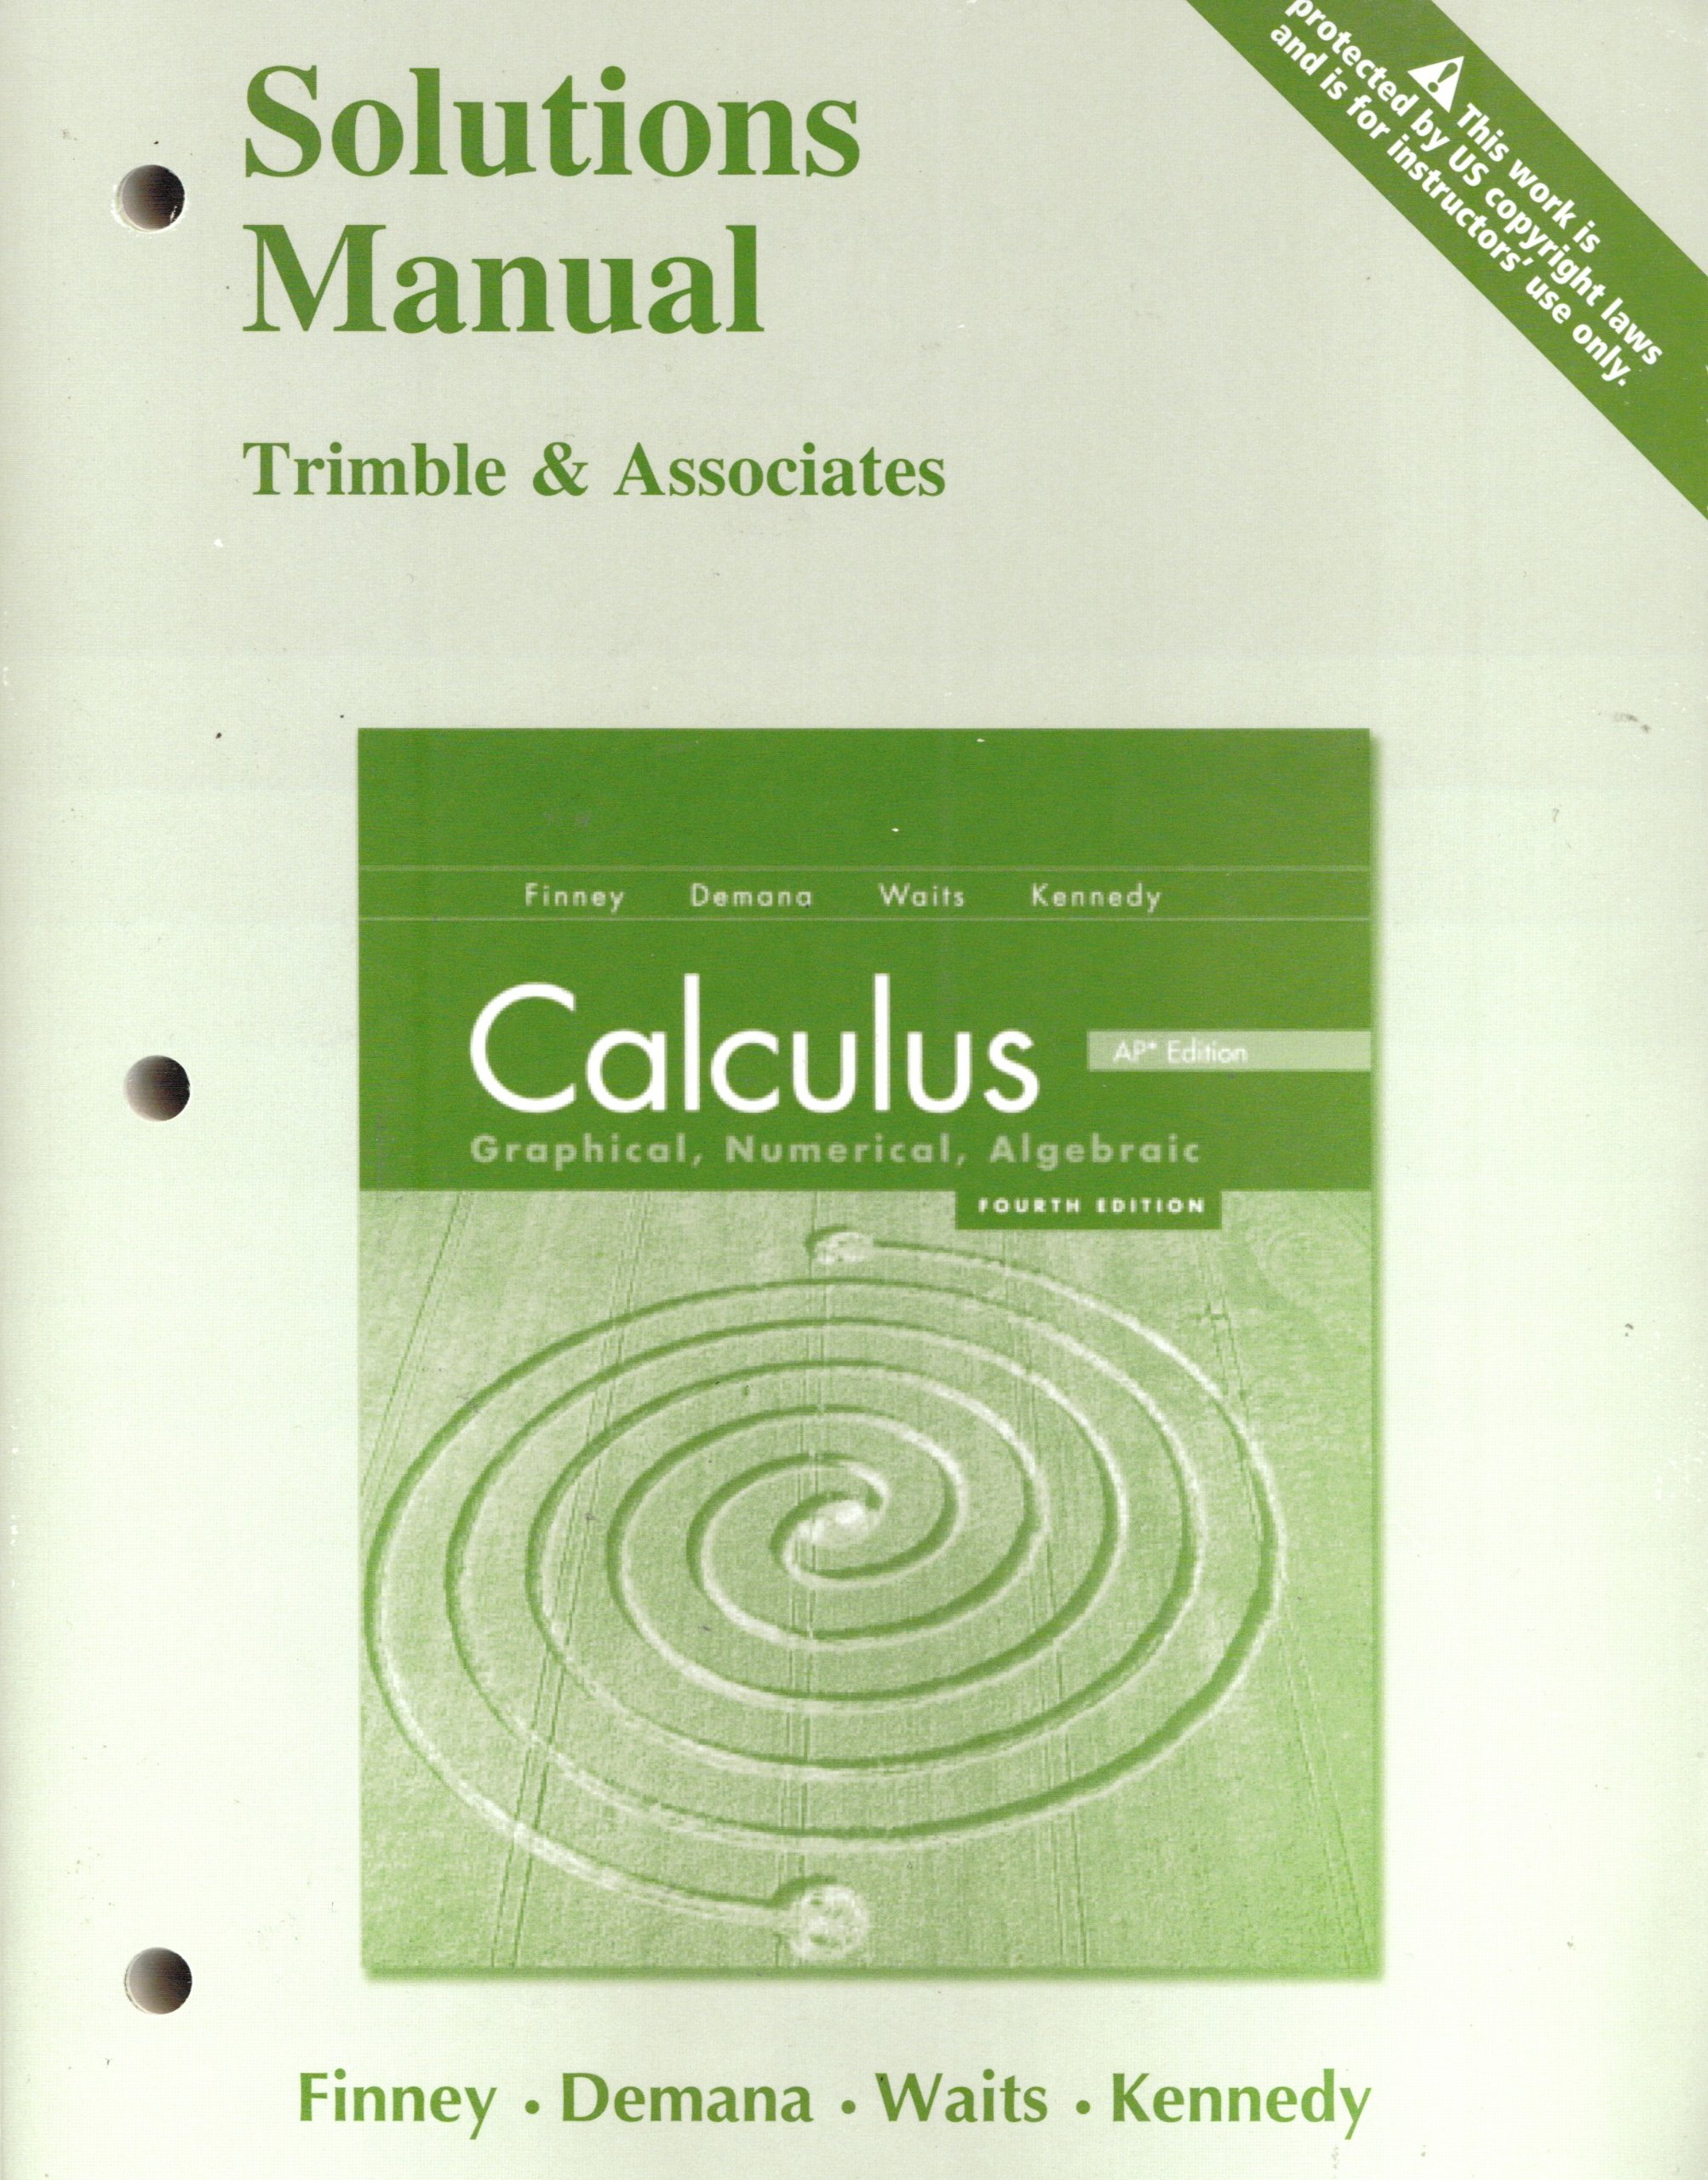 Calculus: Graphical, Numerical, Algebraic Solutions Manual